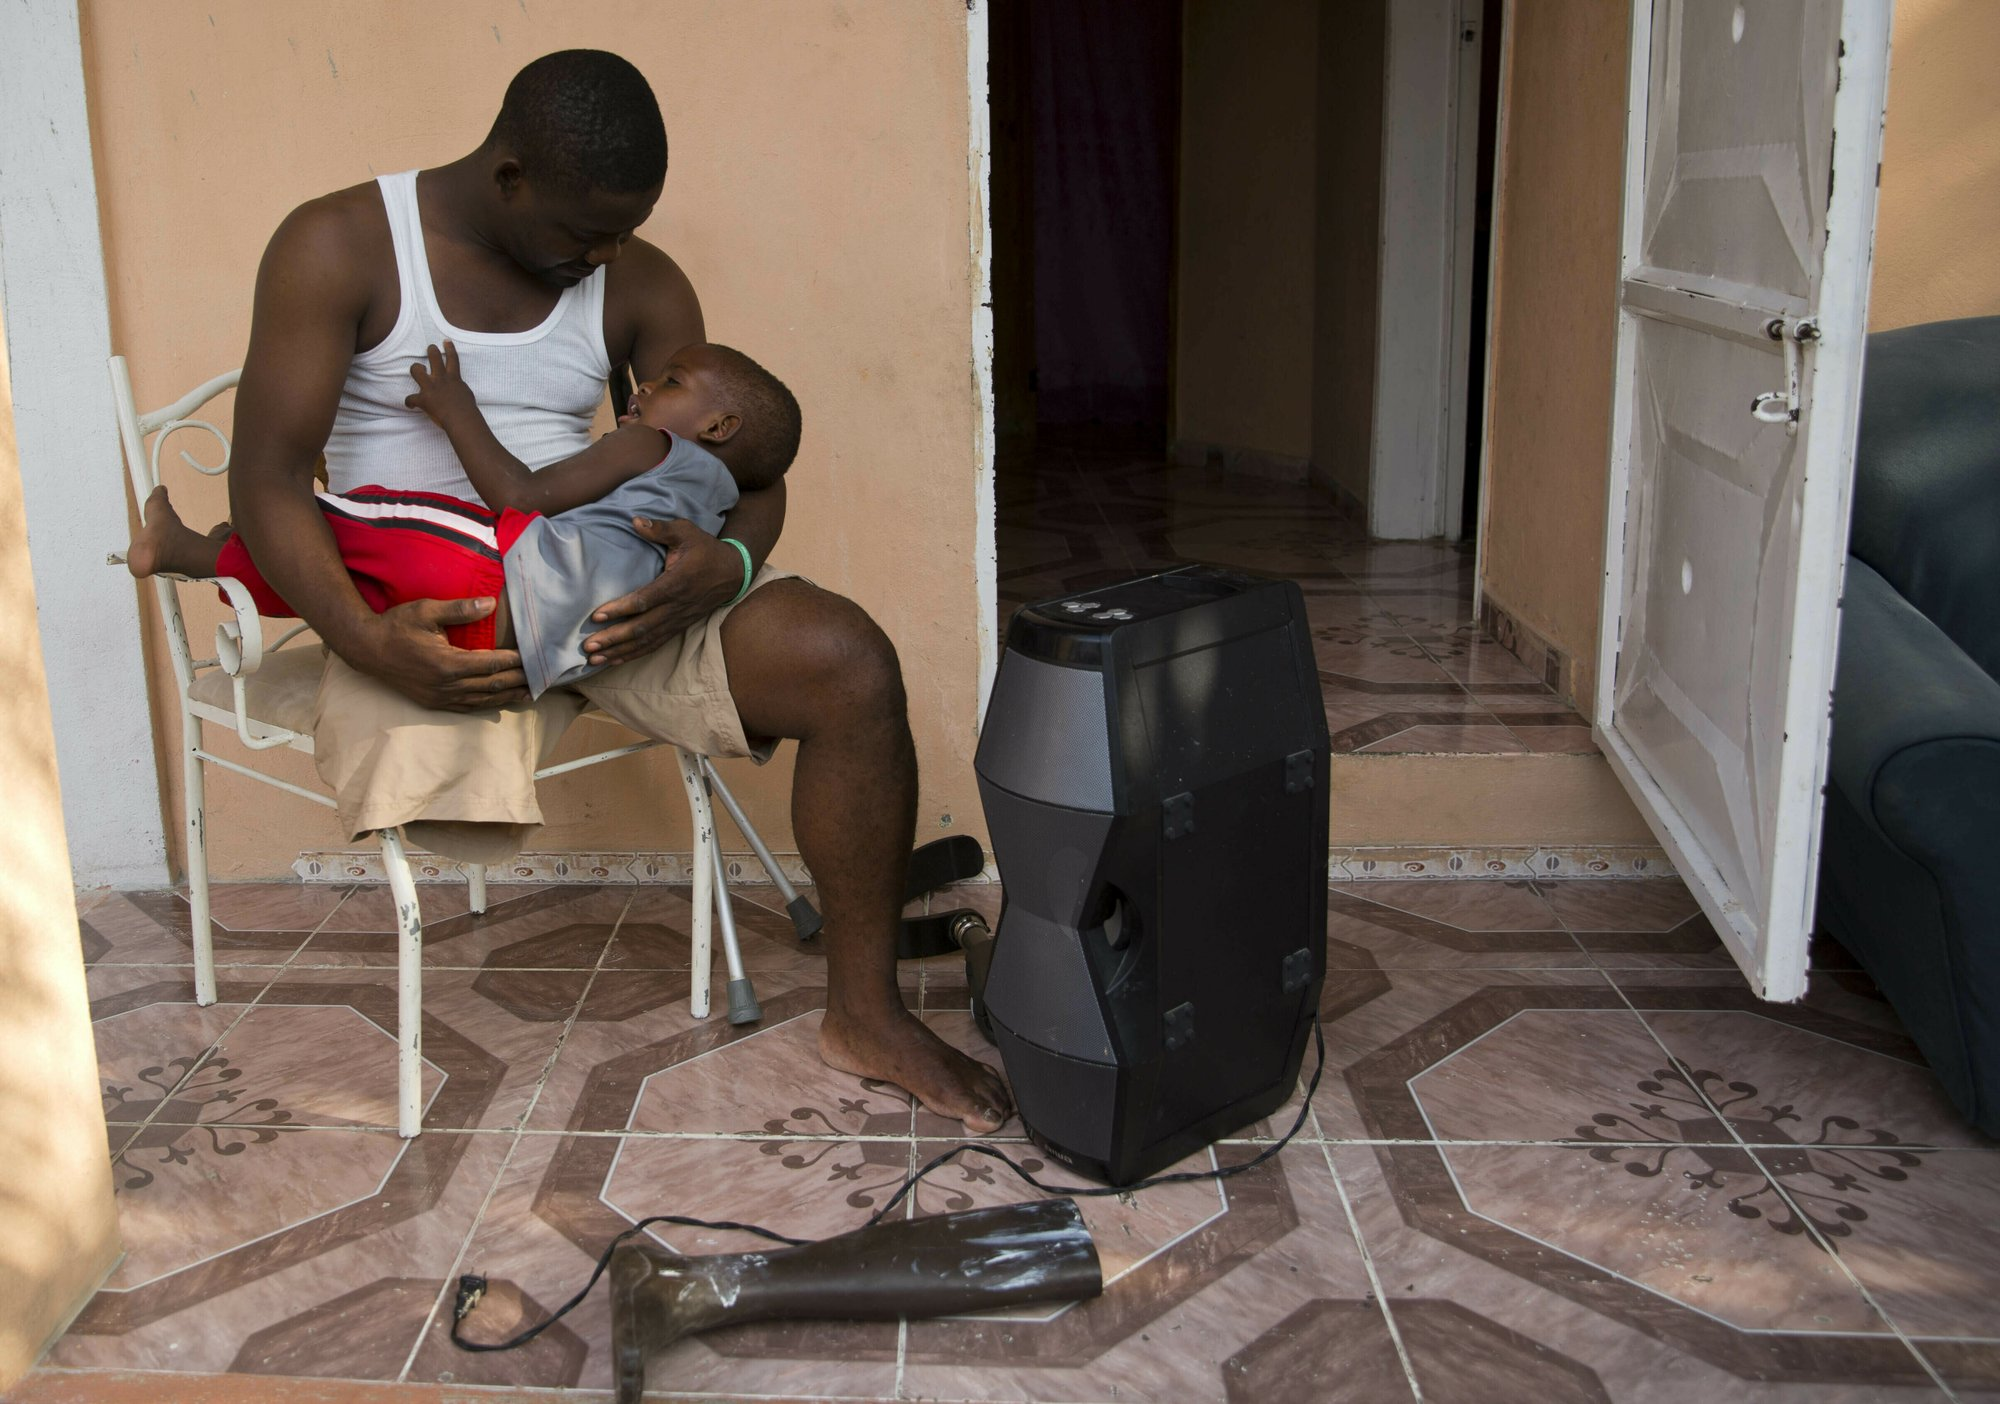 Disabled workers help Haitians who lost limbs in 2010 quake